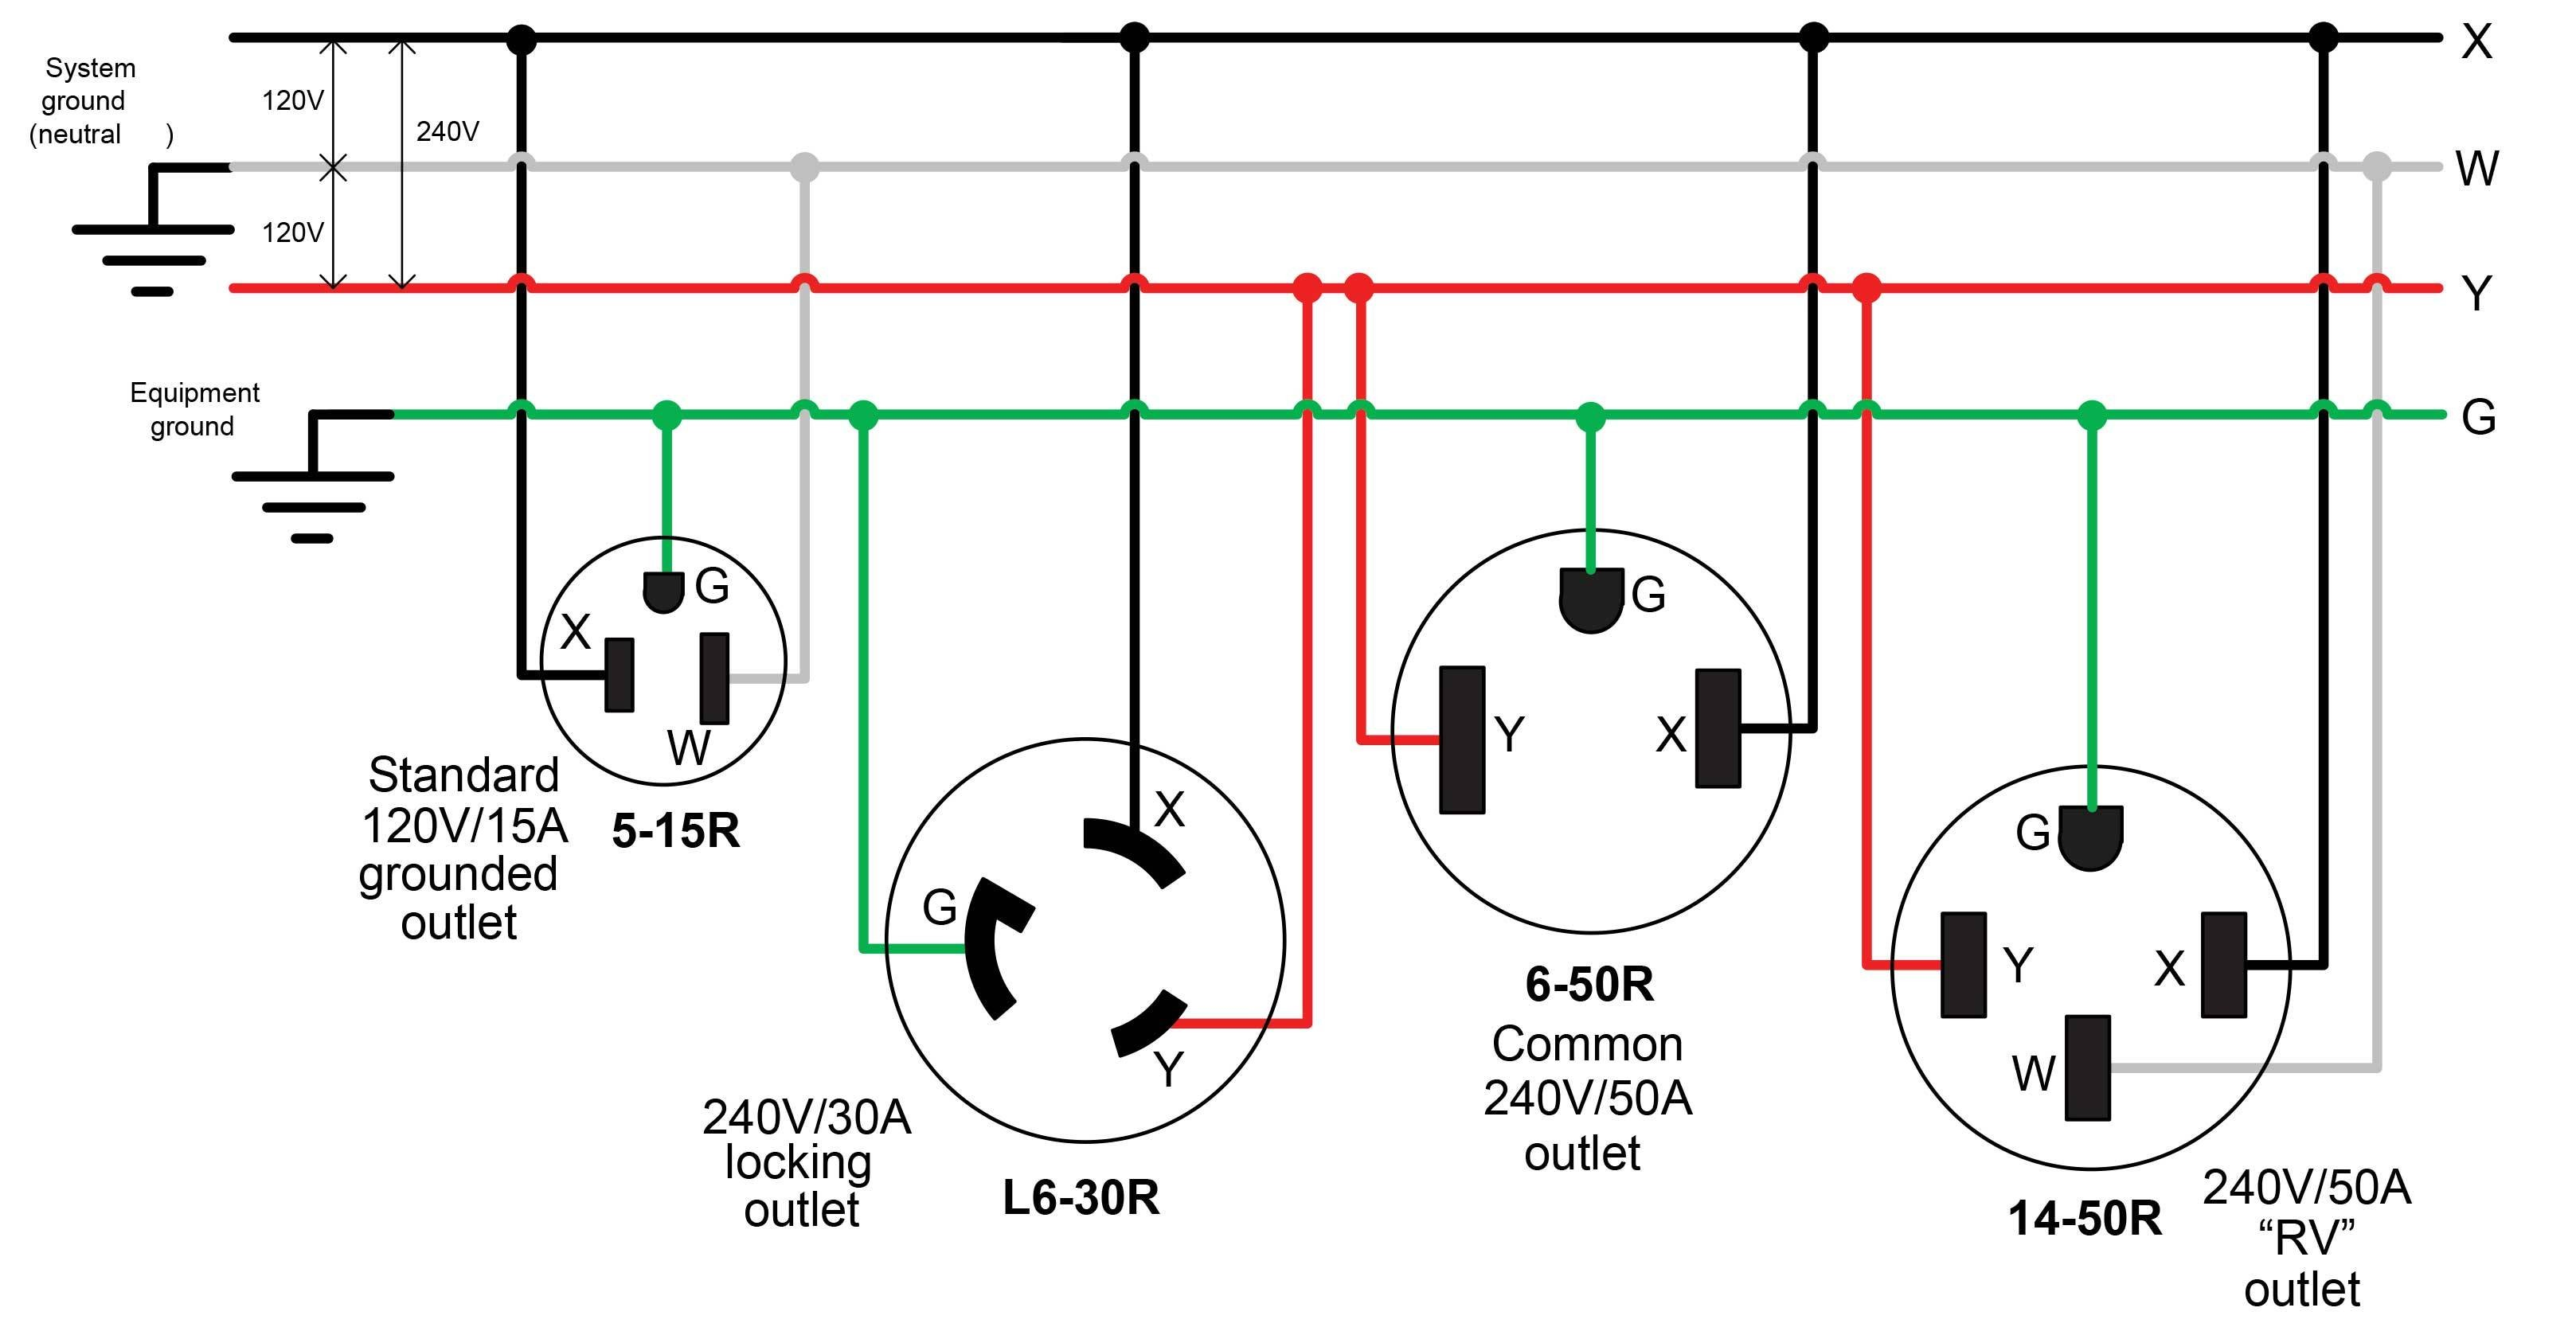 Receptacle wiring diagram examples wiring diagram image nema l14 15 120v 20 amp twist lock receptacle 30 4 prong plug for wiring diagram cheapraybanclubmaster Choice Image